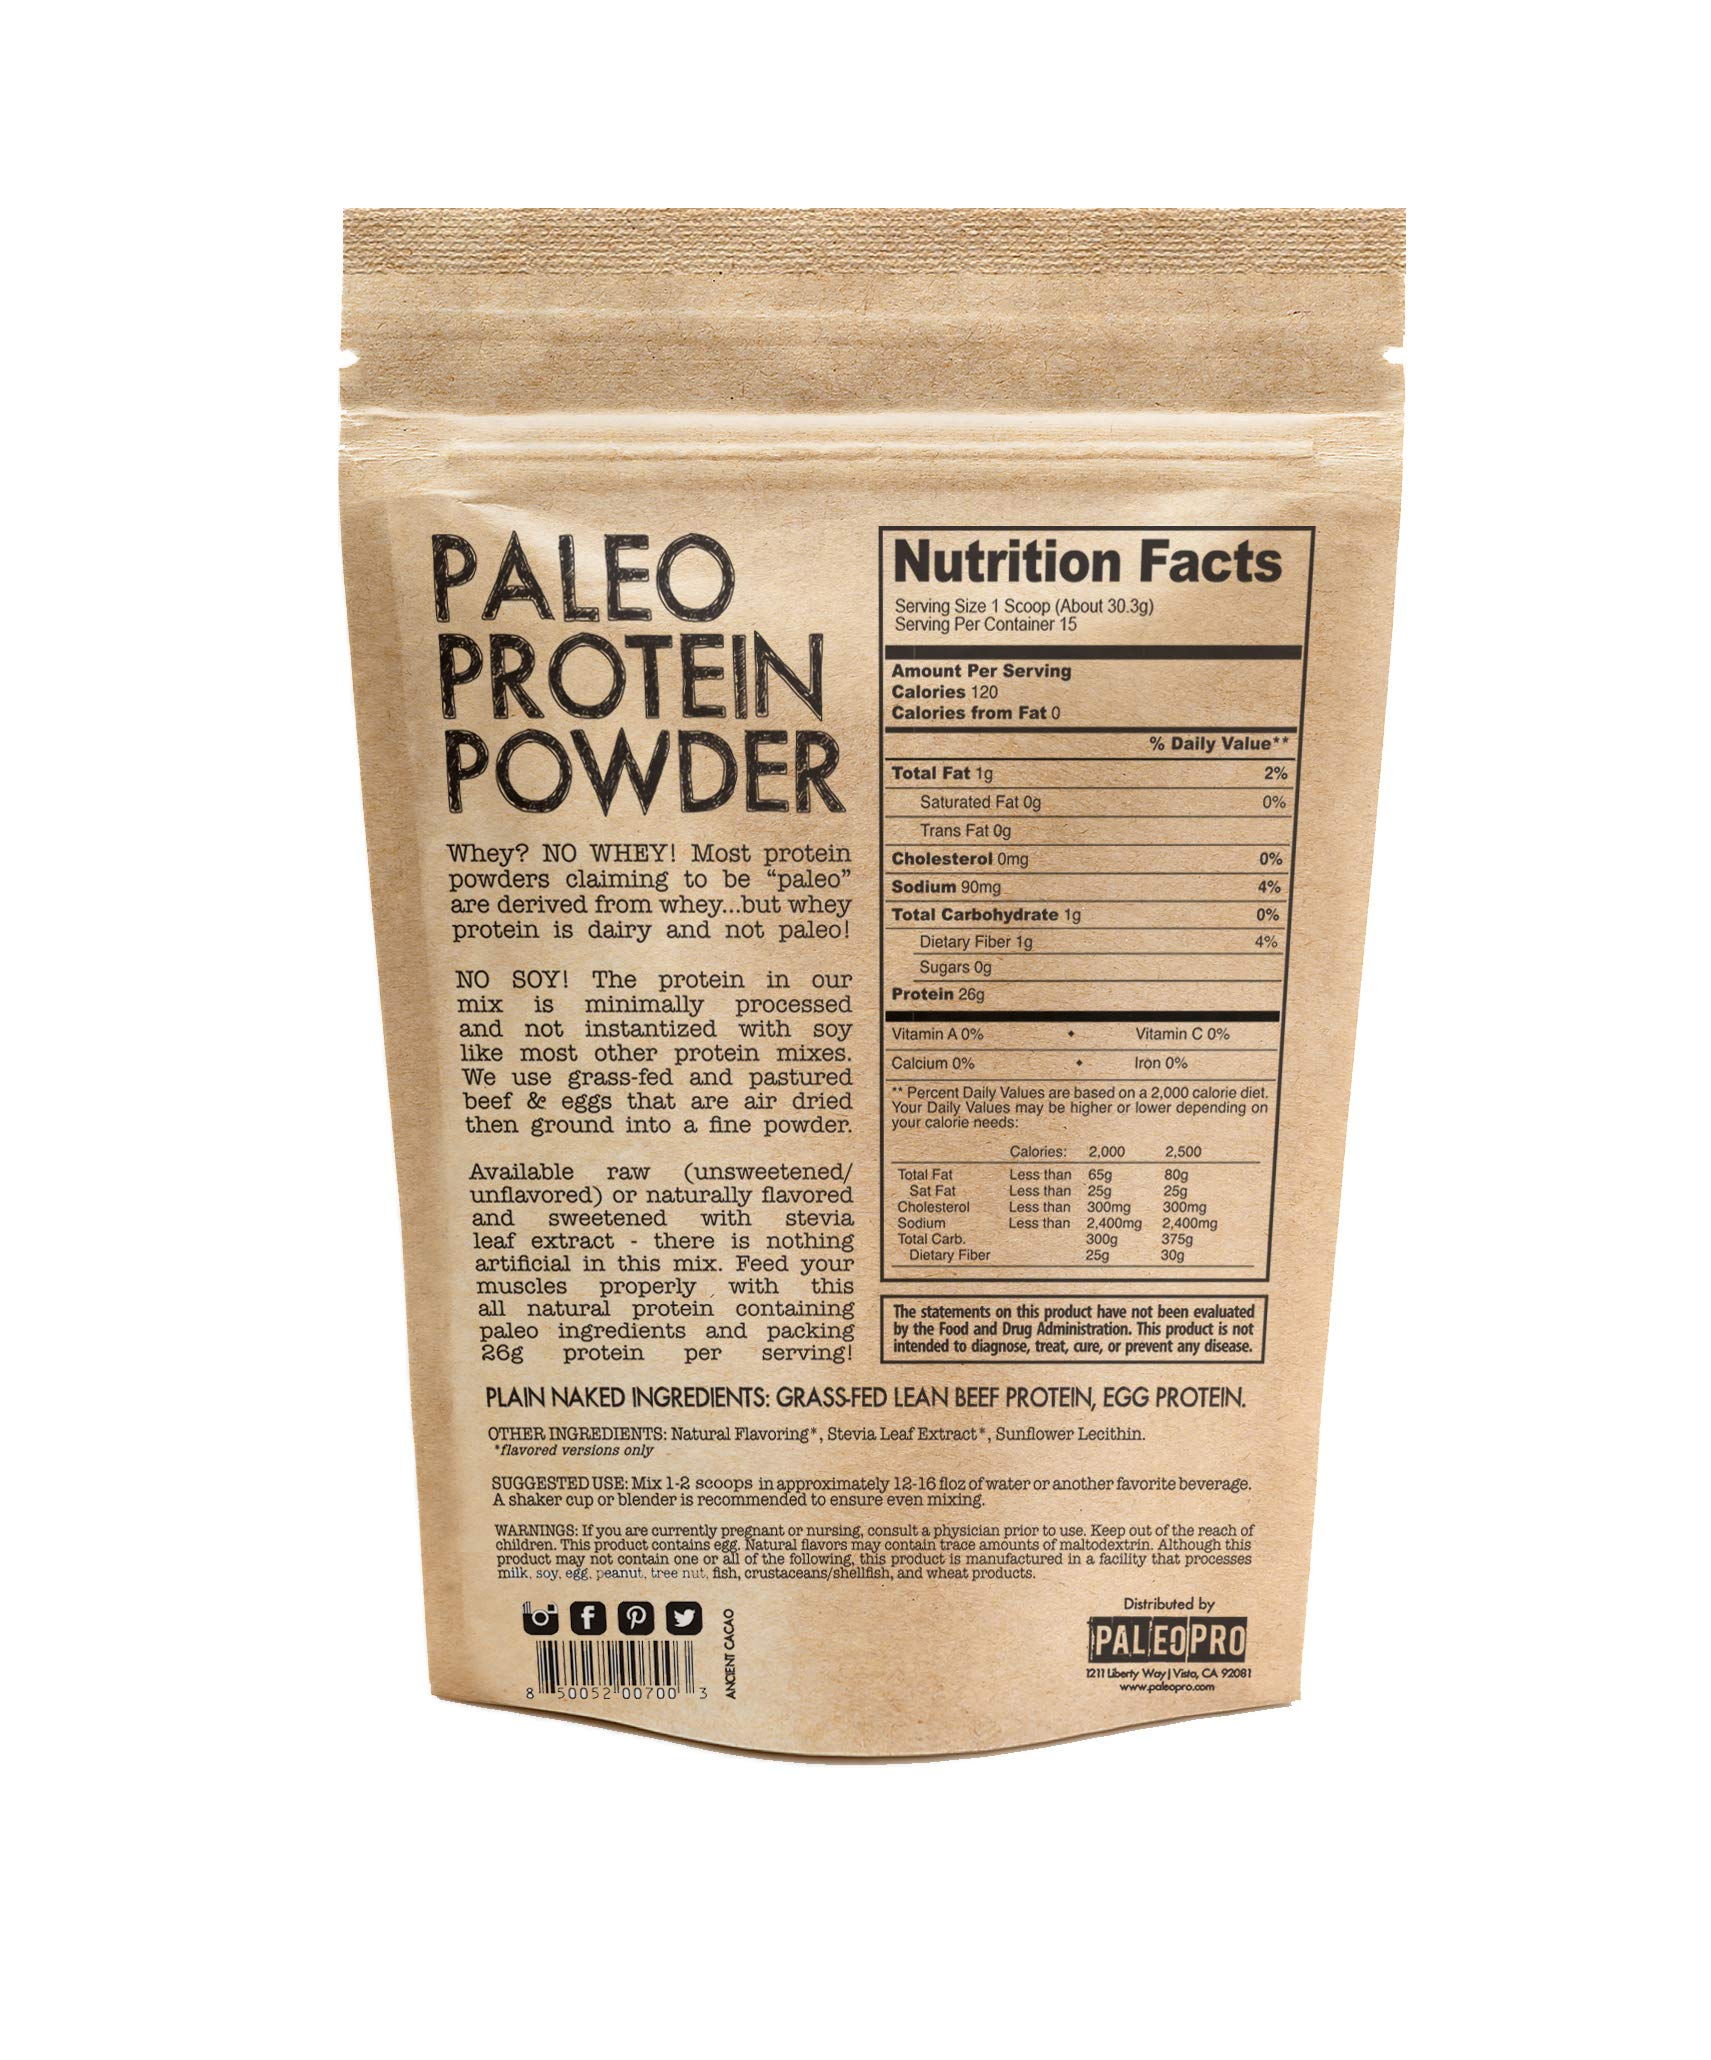 PaleoPro - Paleo Protein Powder - Gluten Free, no Dairy, no whey, no Soy, pastured Grass-fed Beef, no Added Hormones, Minimal Processing, Paleo Ingredients, Delicious Taste - 1lb/454g by Paleo Pro